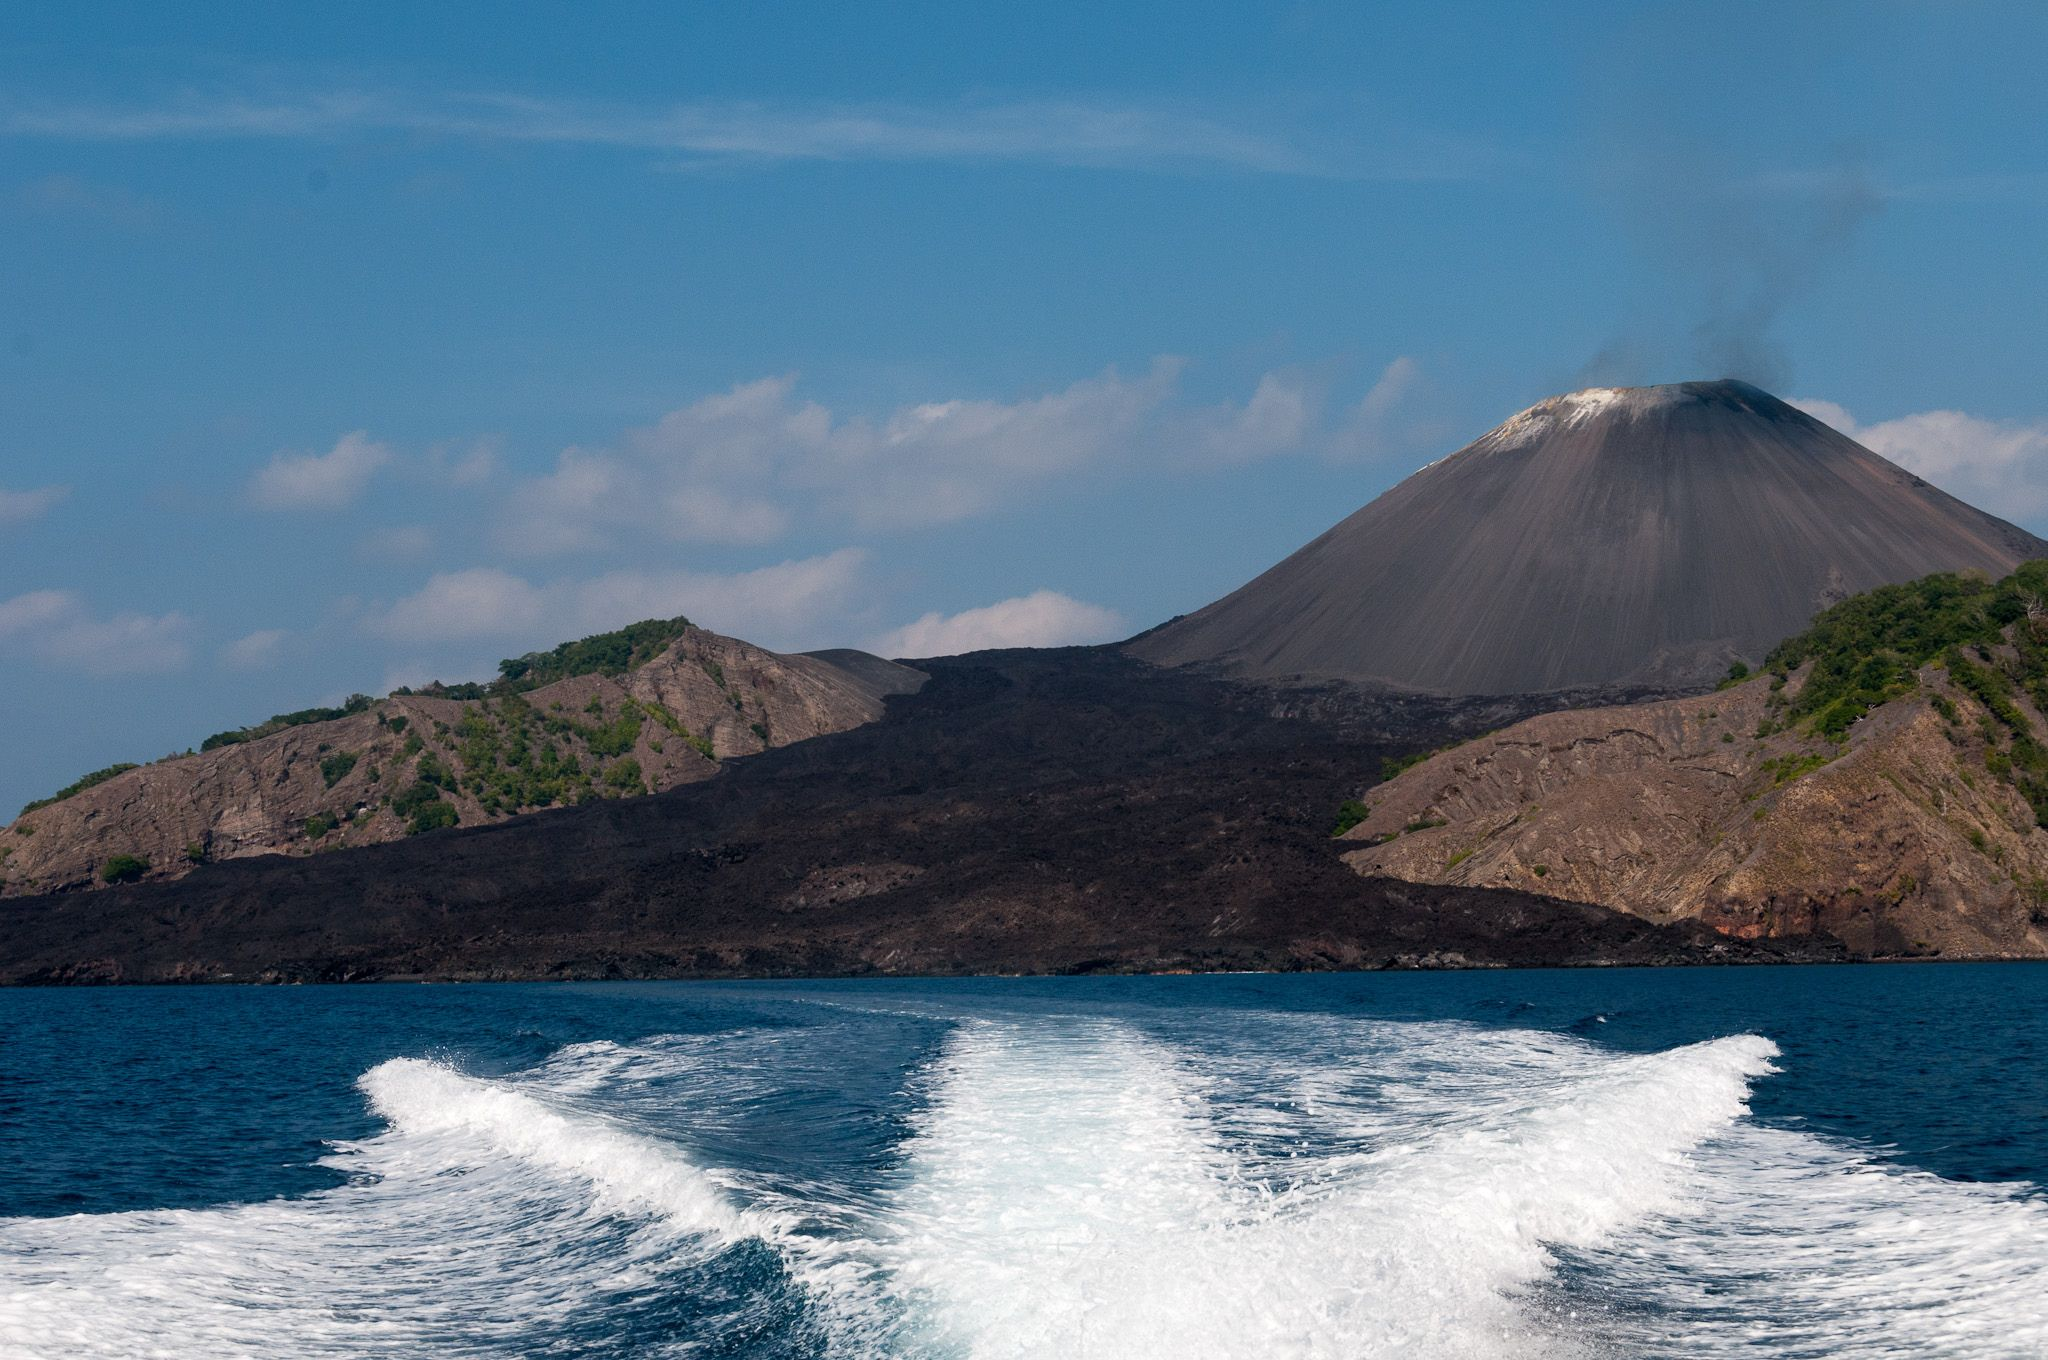 India S Only Active Volcano Erupted Last Month How Much Do You Know About It